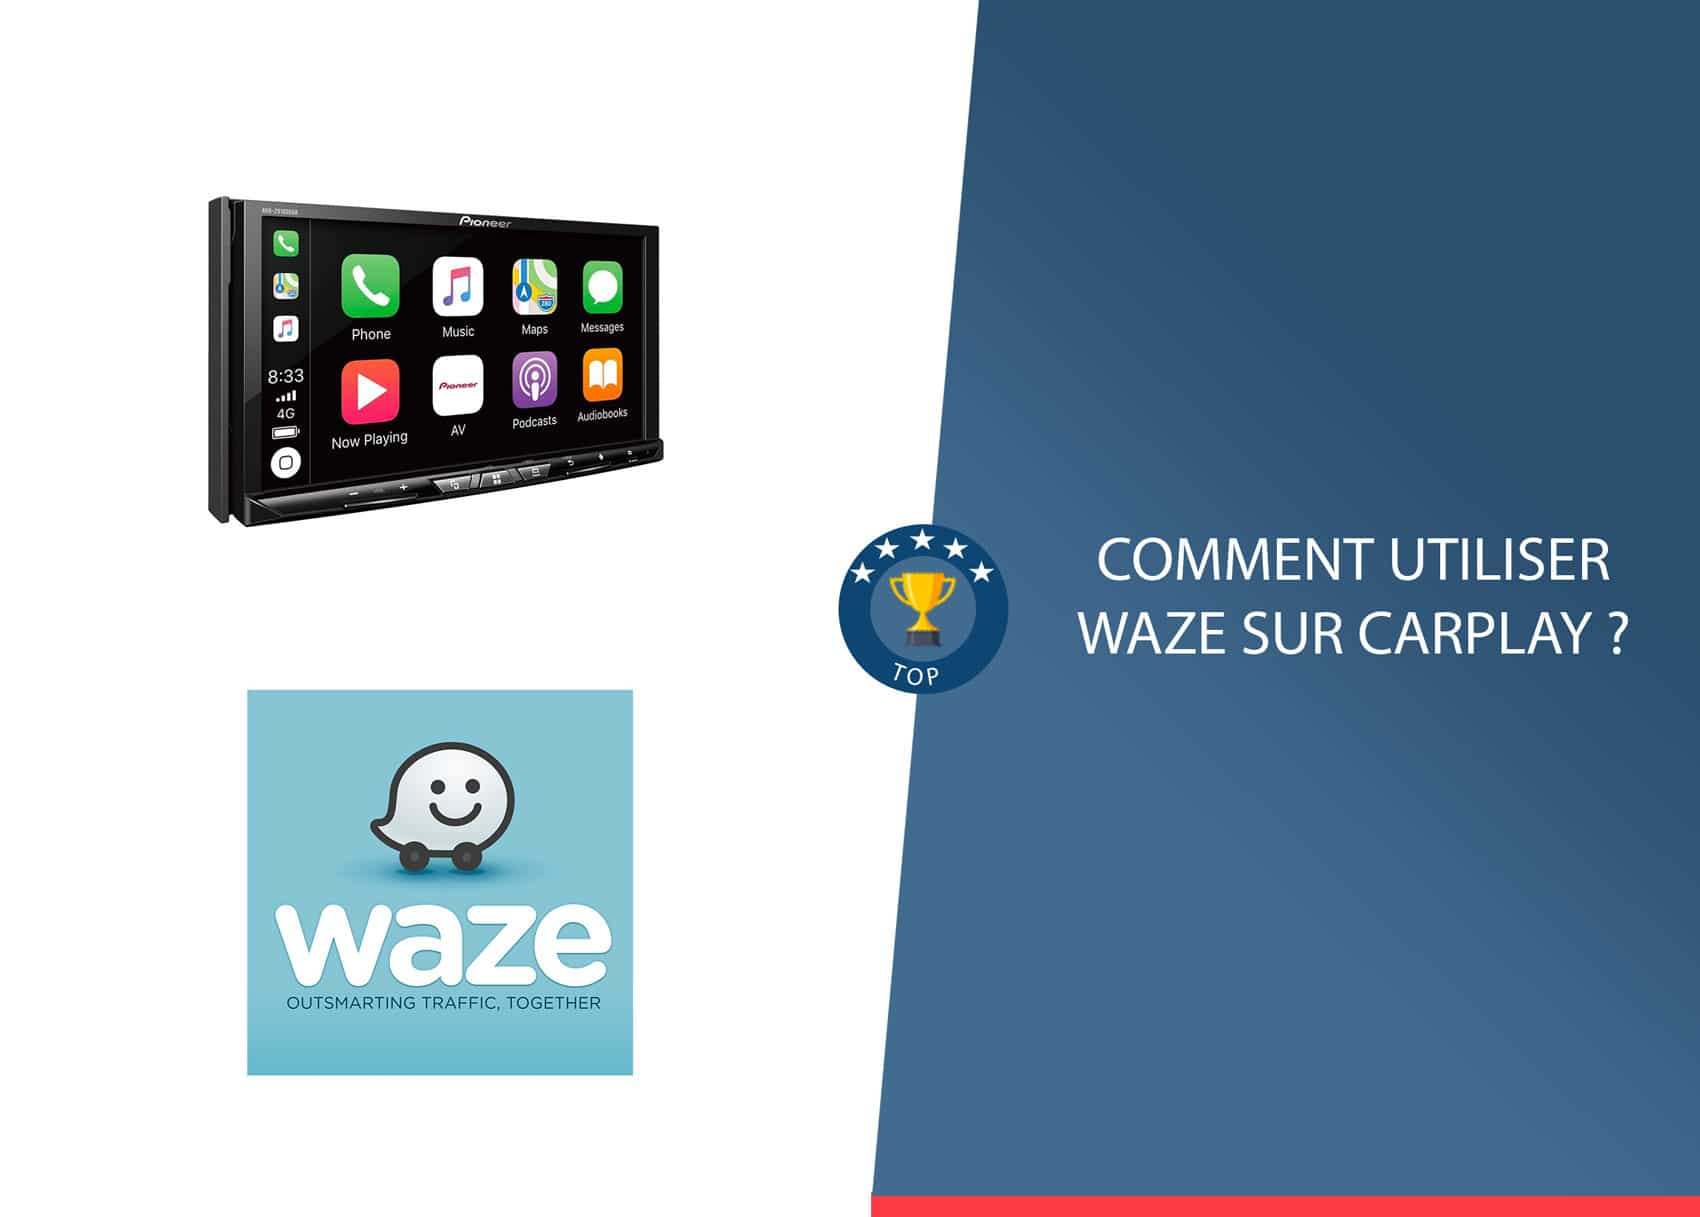 Installer Waze sur Carplay c'est possible maintenant